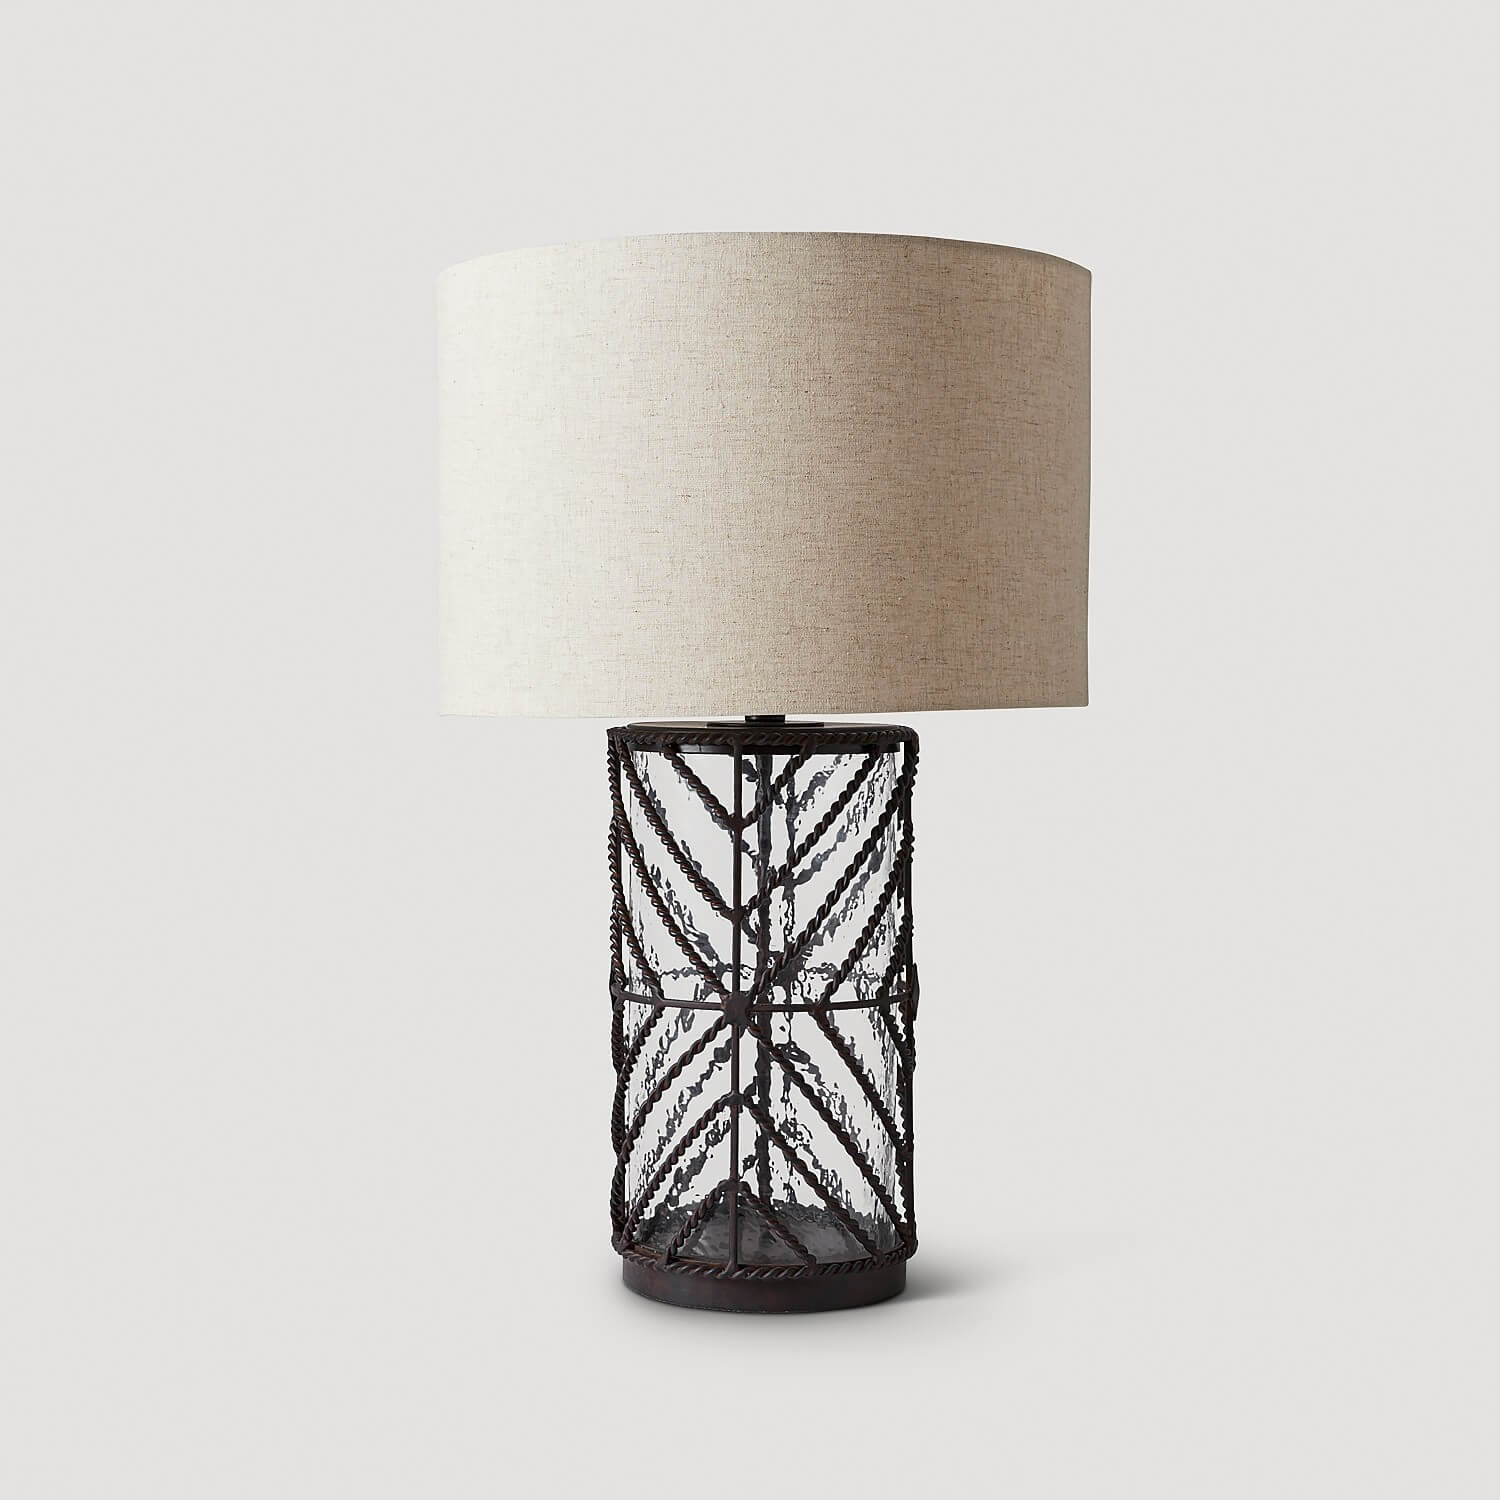 Tidal table lamp DC